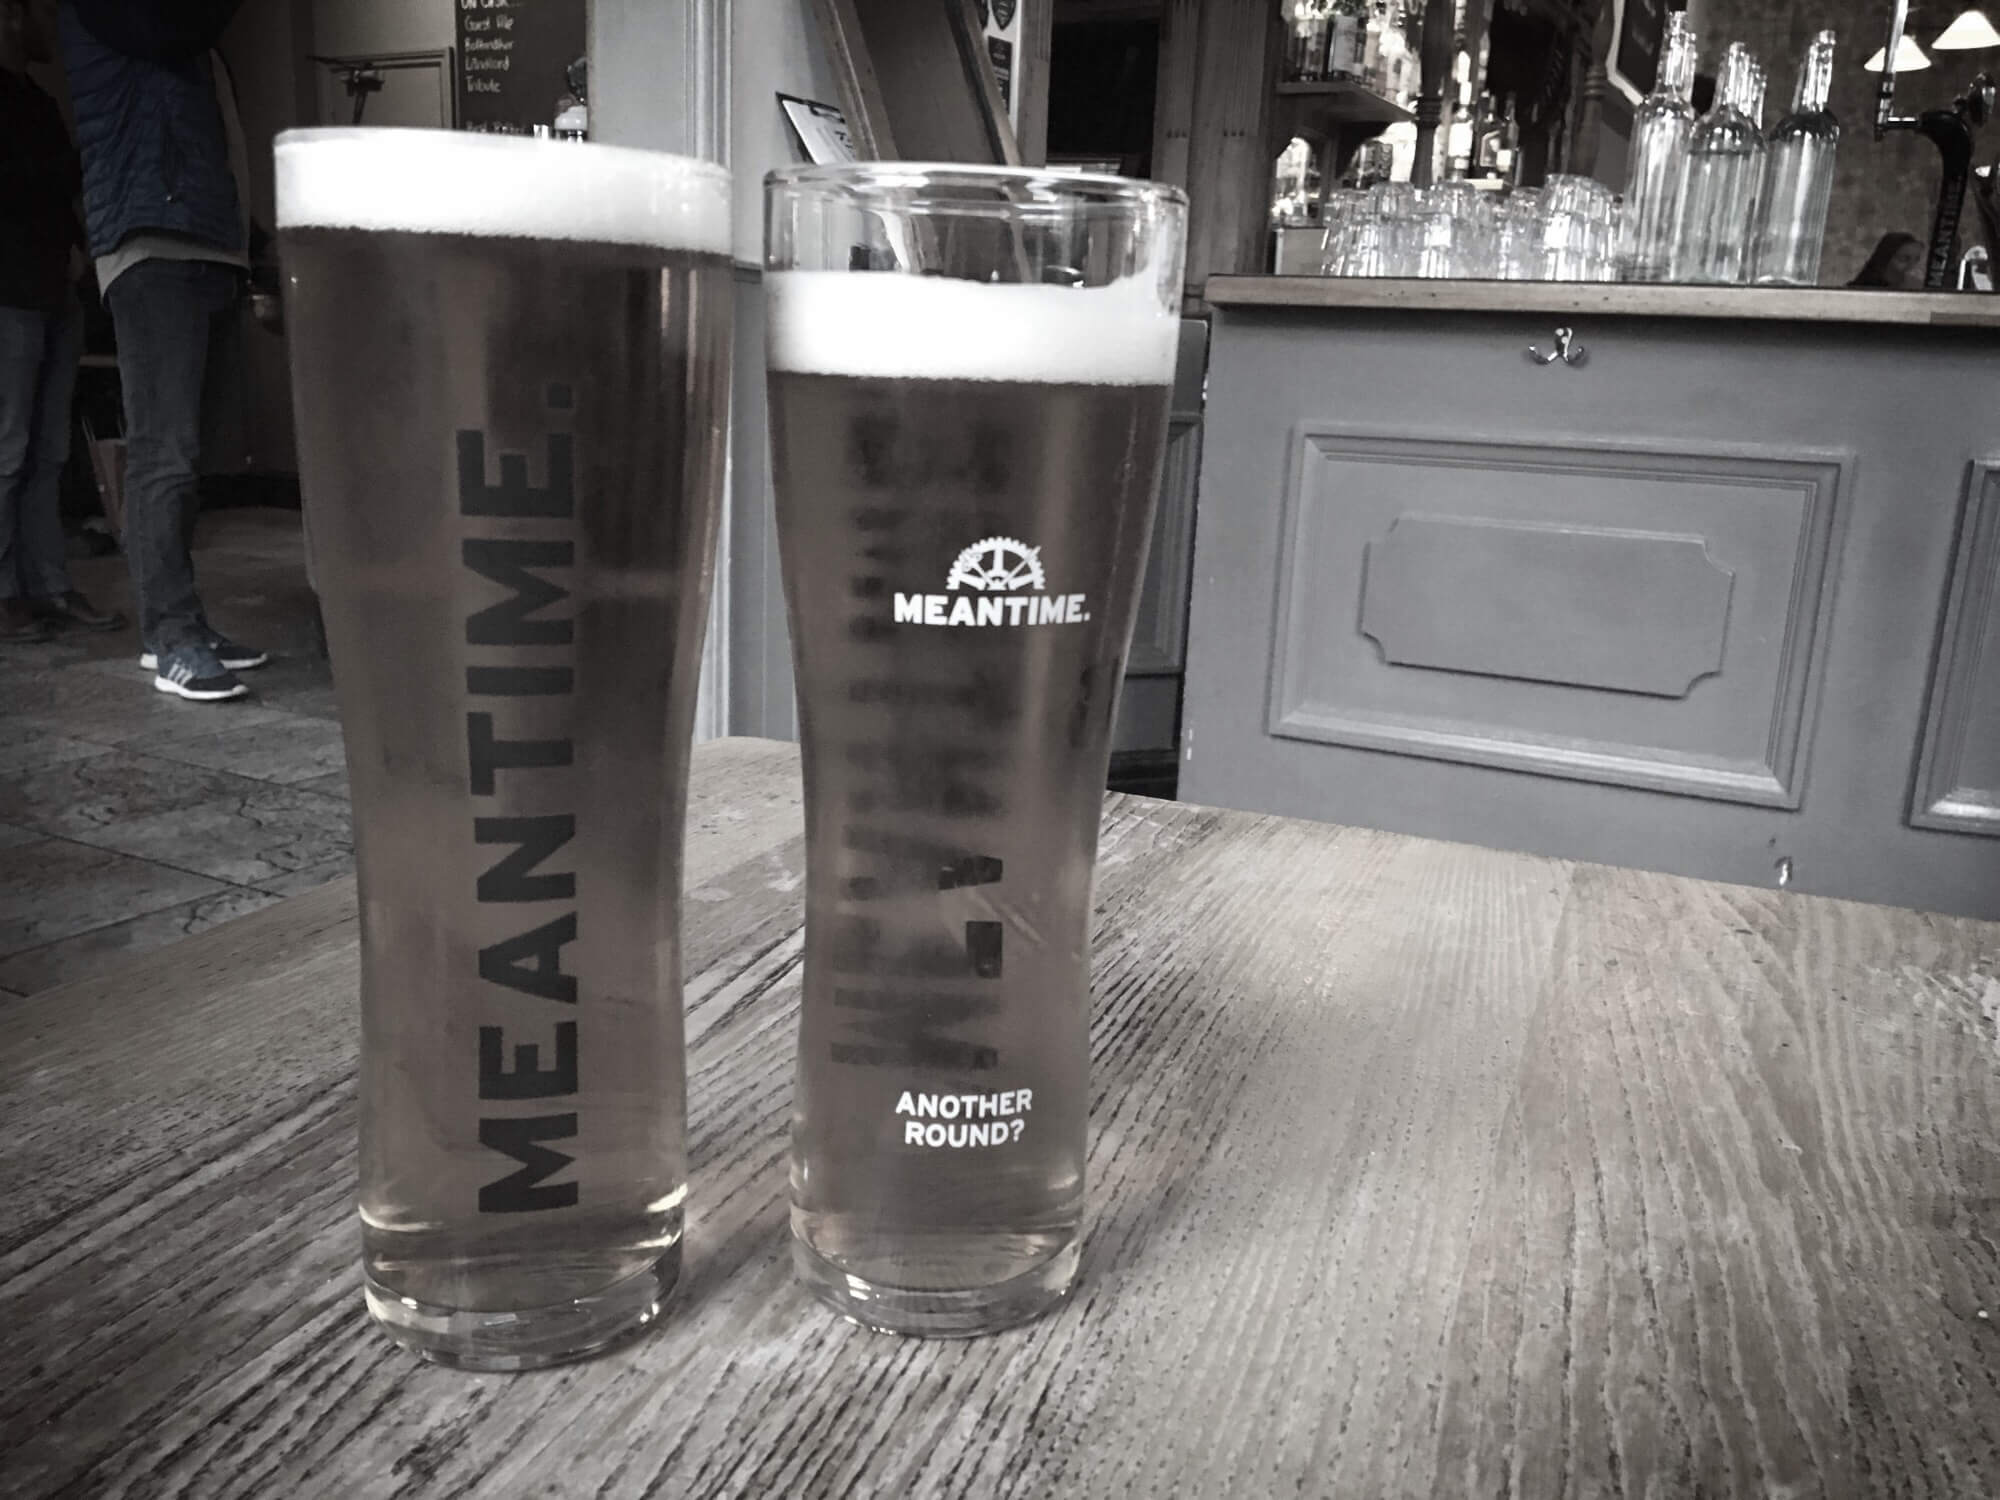 Battle of the Free Pints - Brewdog Punk IPA Vs Meantime Pale Ale